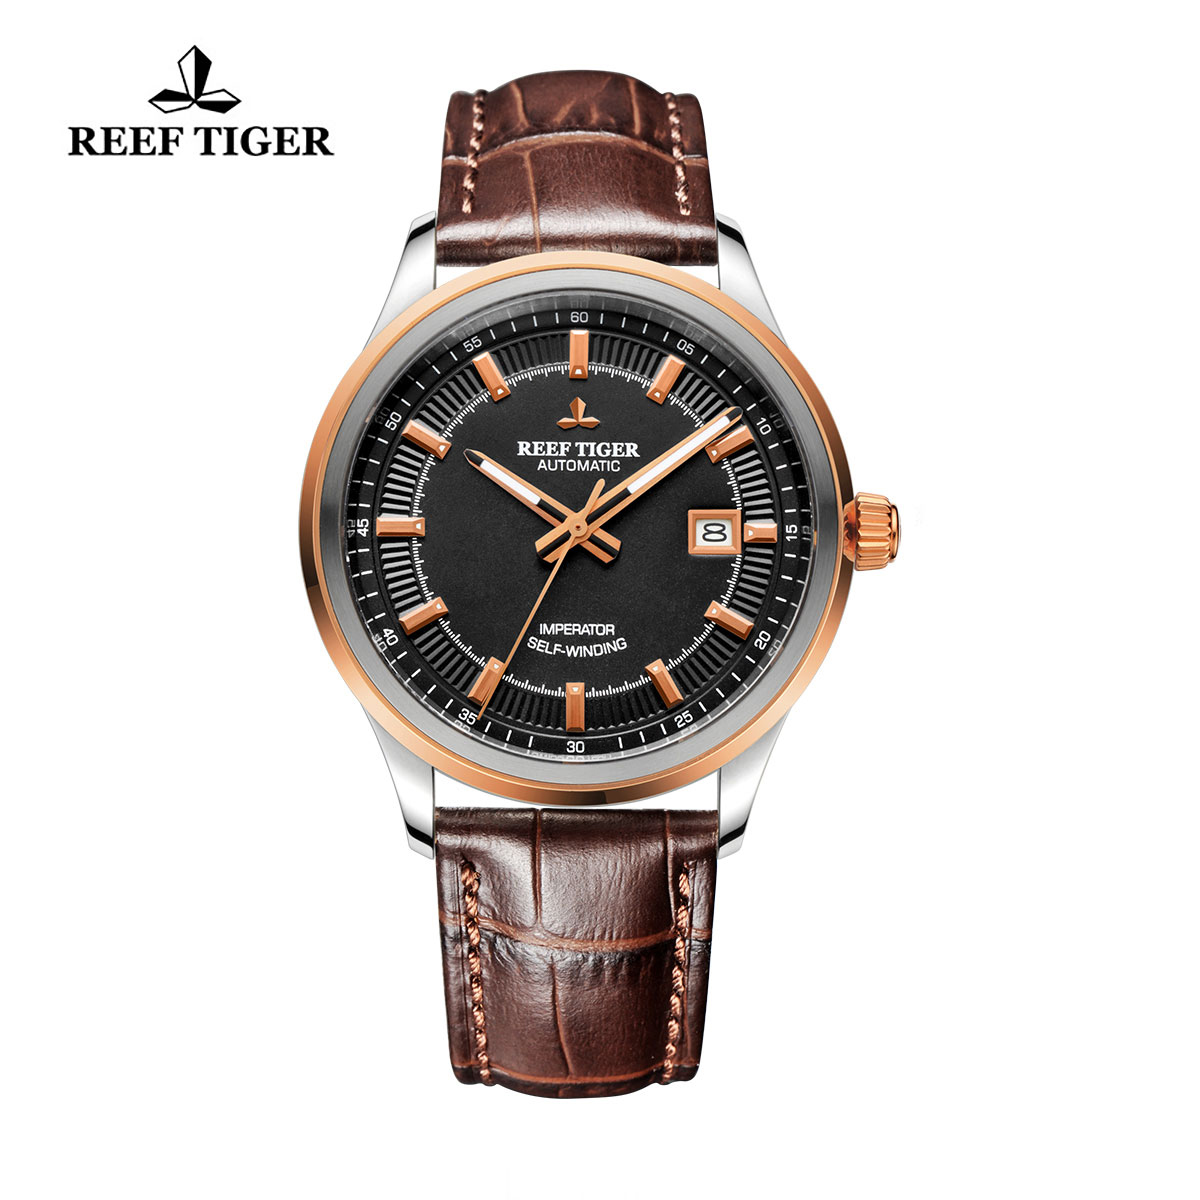 Reef Tiger Imperator Dress Watch Automatic Black Dial Calfskin Leather RGA8015-PBB